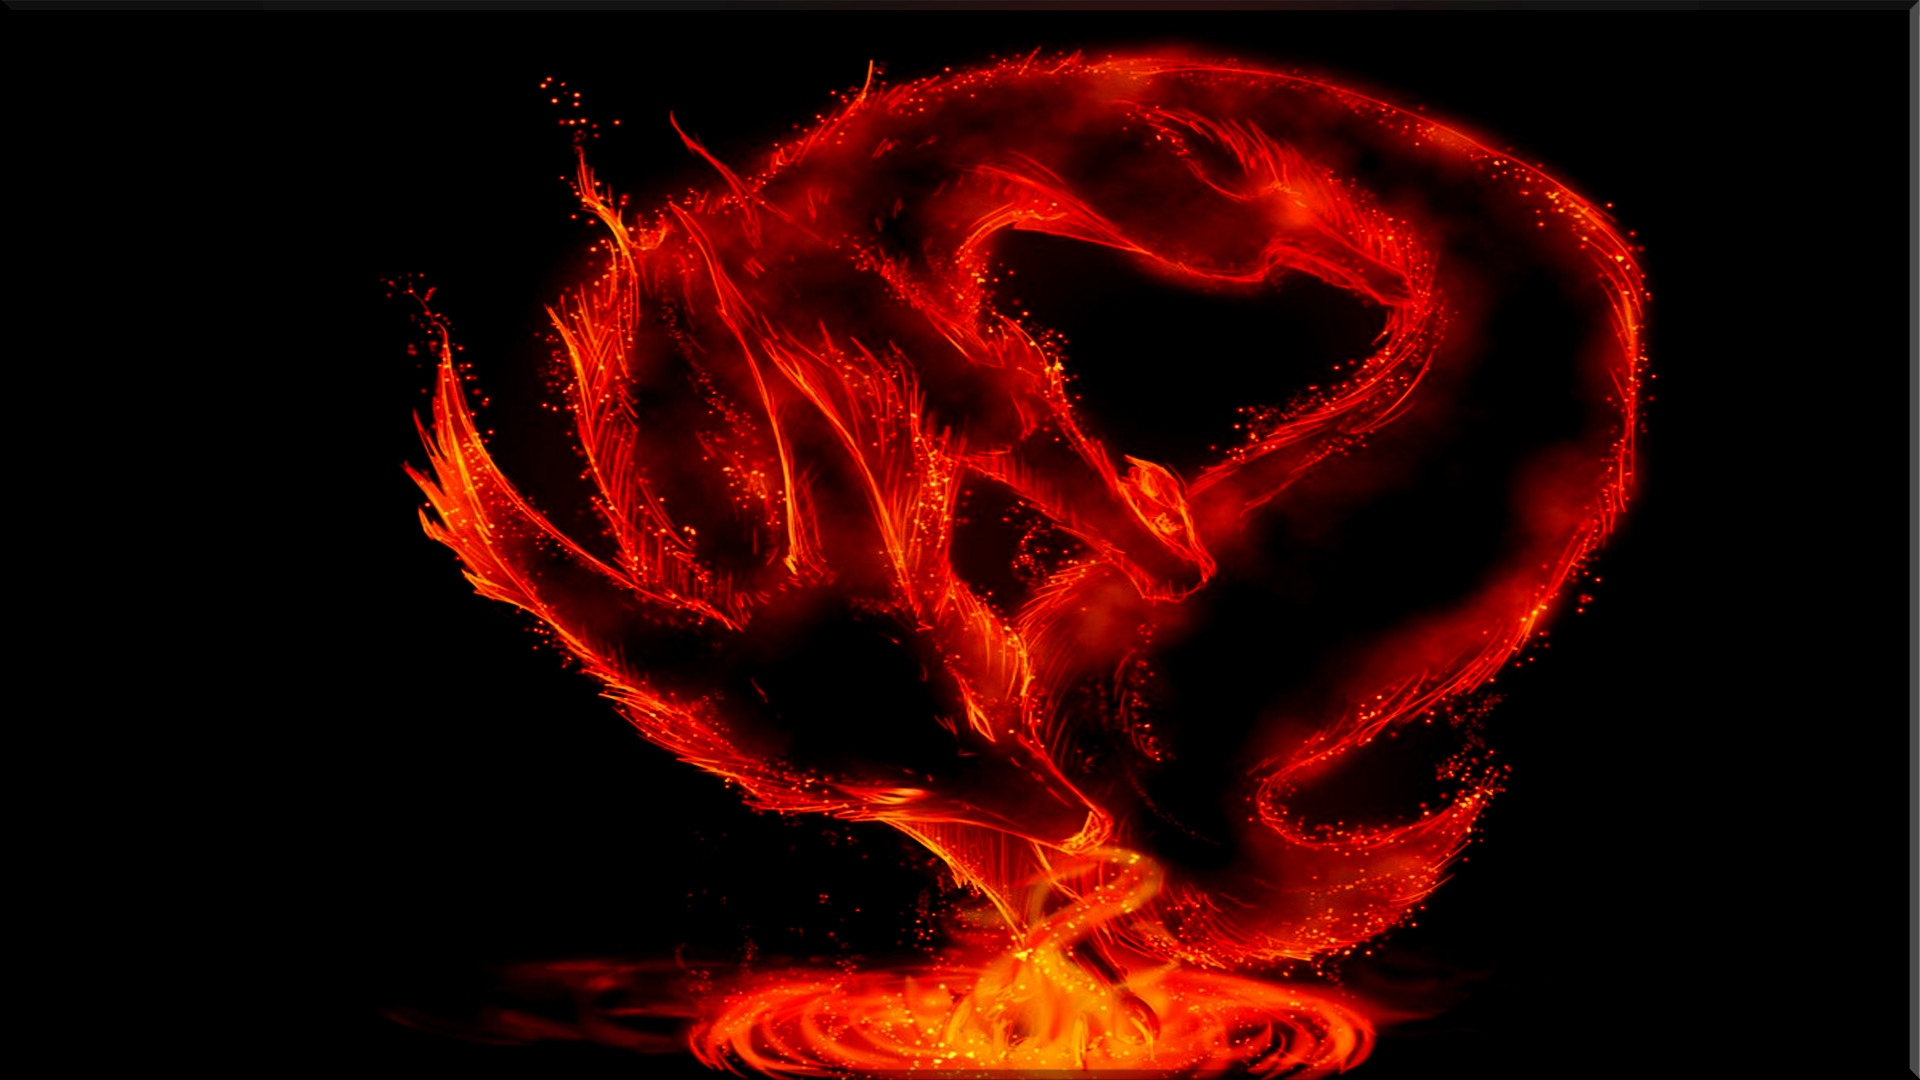 Red Fire Dragon: Red Dragon Wallpaper HD (65+ Images